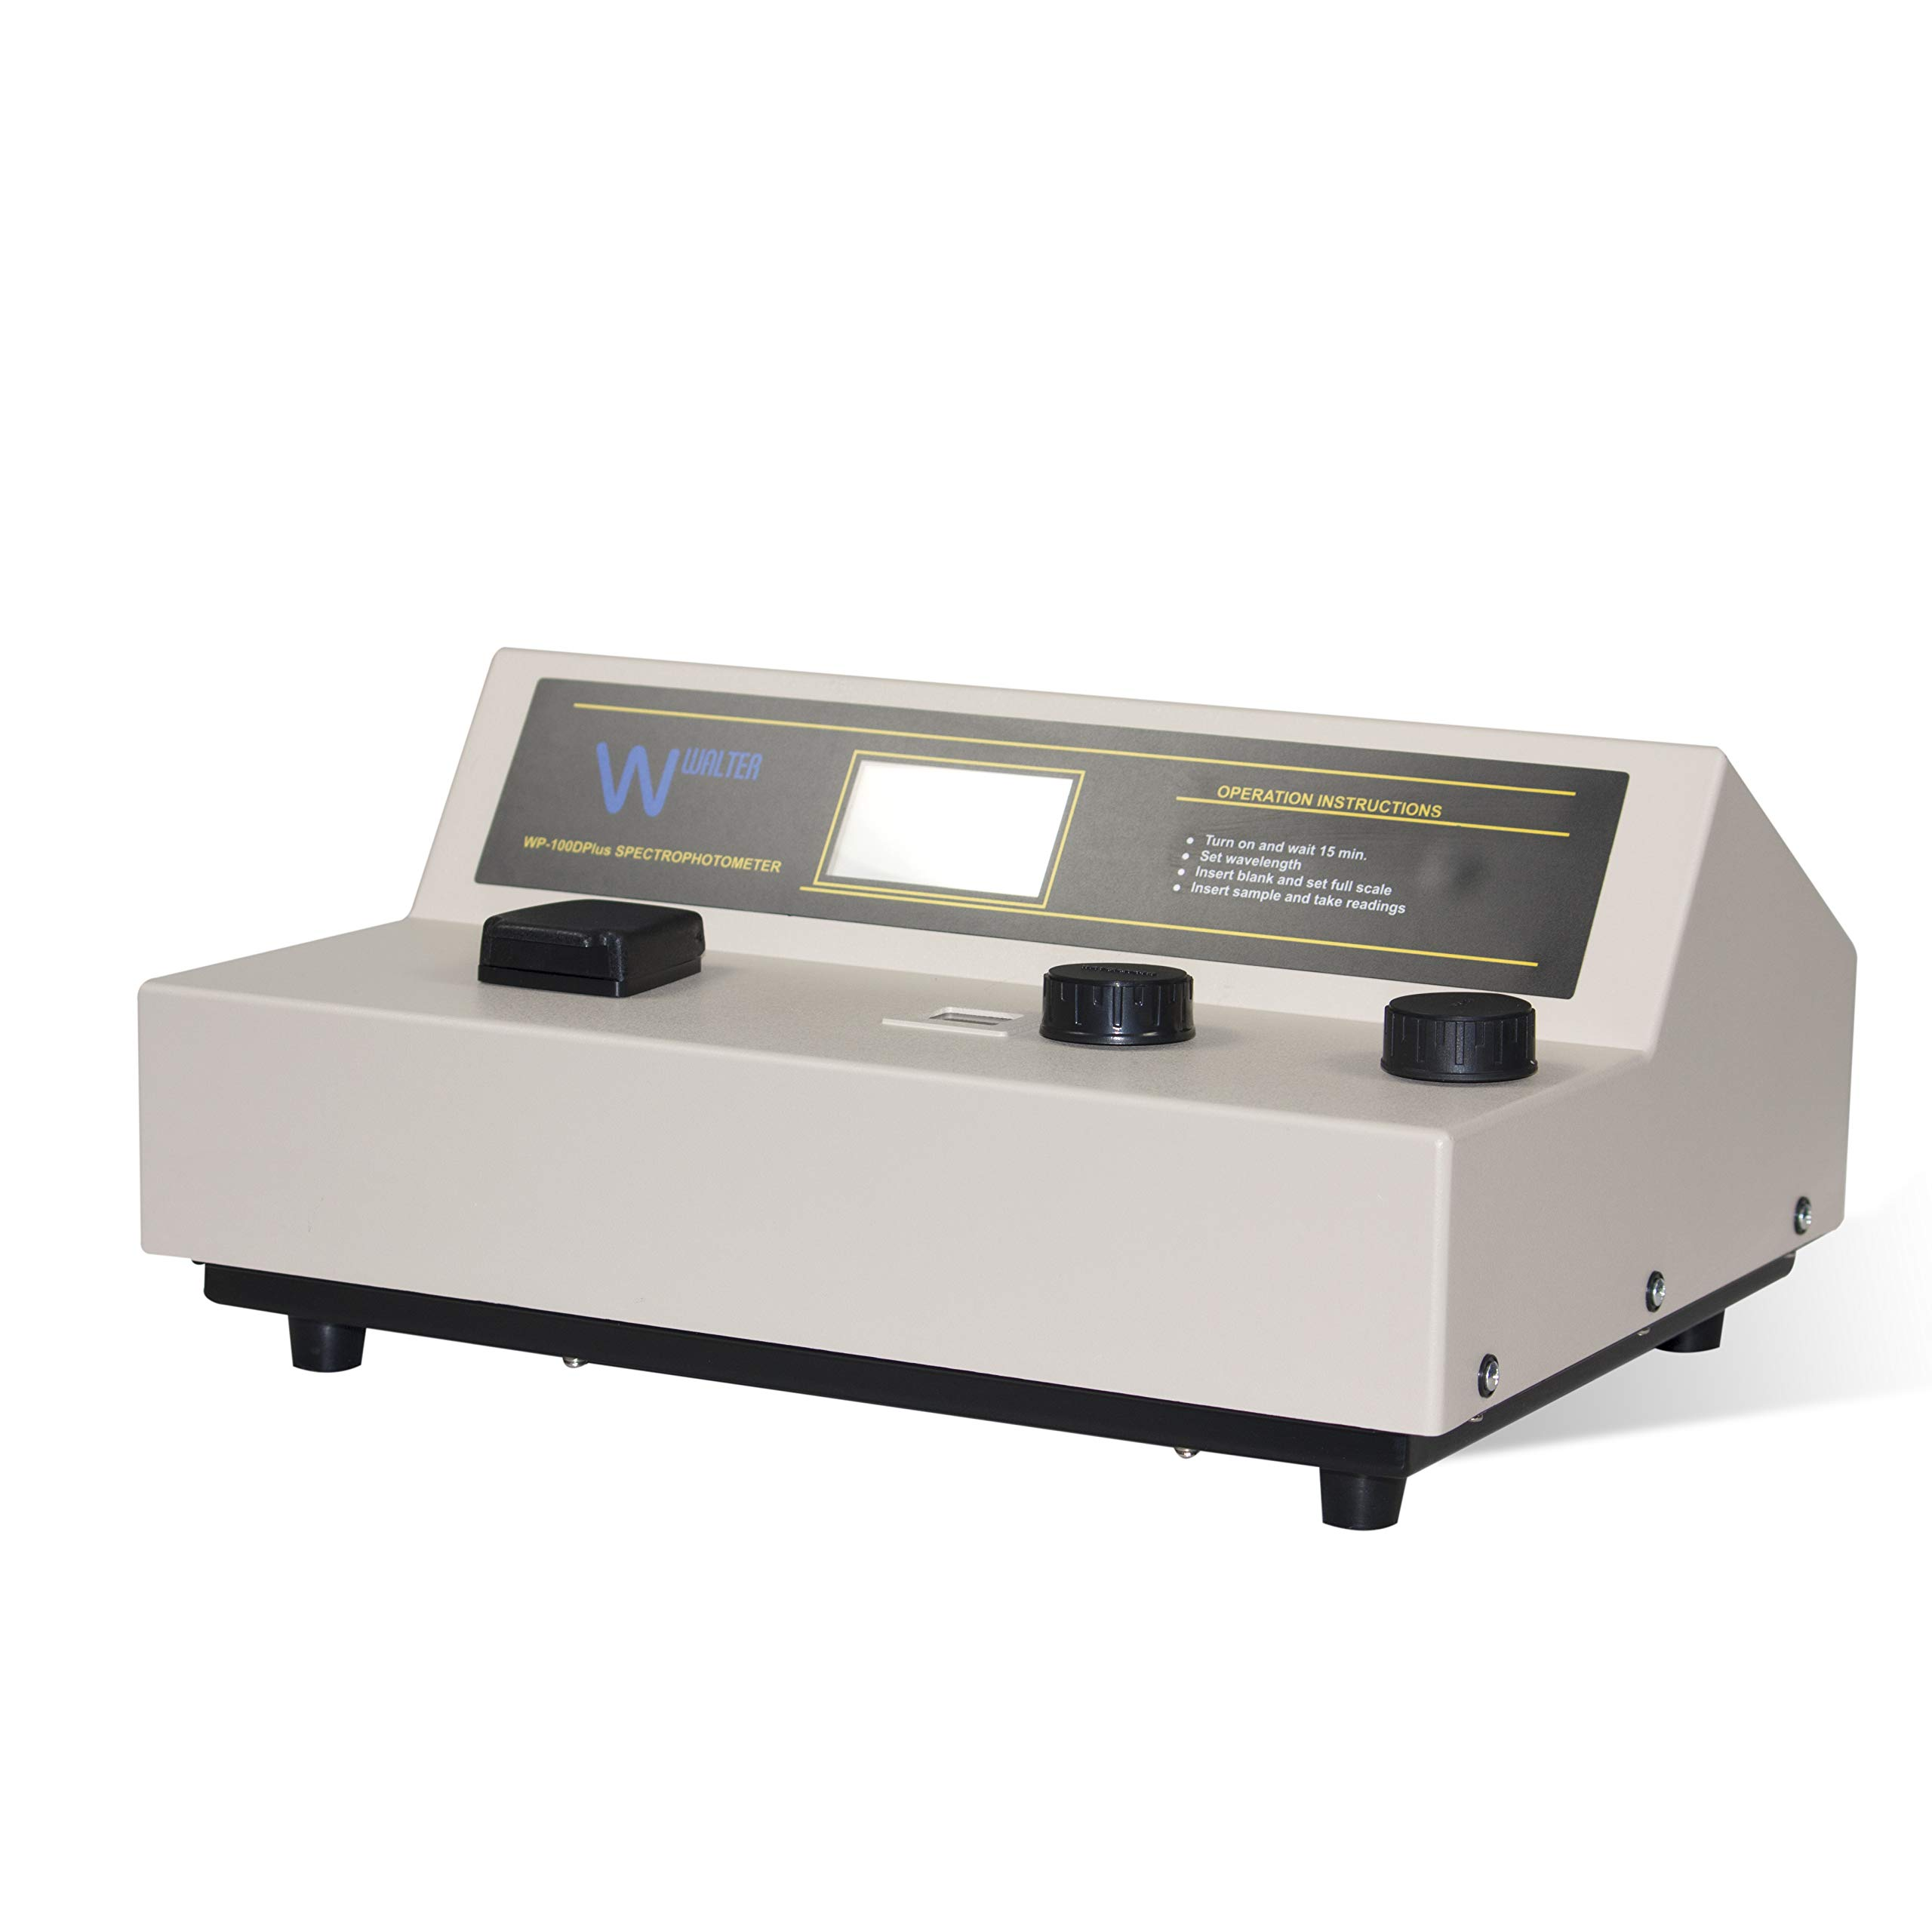 Vision Scientific VLS001 Spectrophotometer, Absorbance and Transmittance Reading, 400-1000nm Wavelength, Spectral Bandwidth 15nm,Wavelength accurracy ± 2nm by Vision Scientific